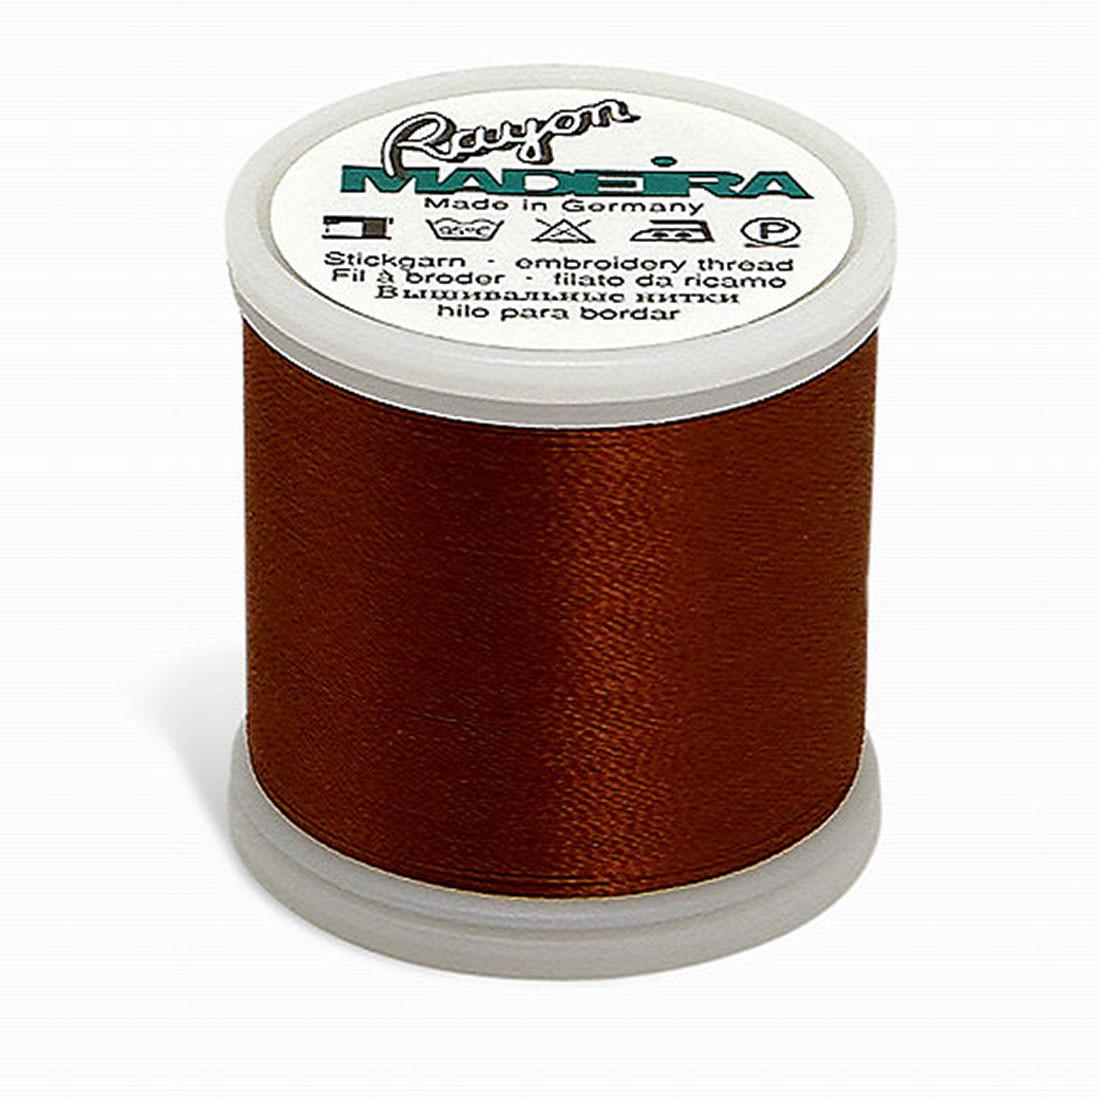 Madeira Rayon - Machine Embroidery Thread - 220YD Spool - Tawny Brown